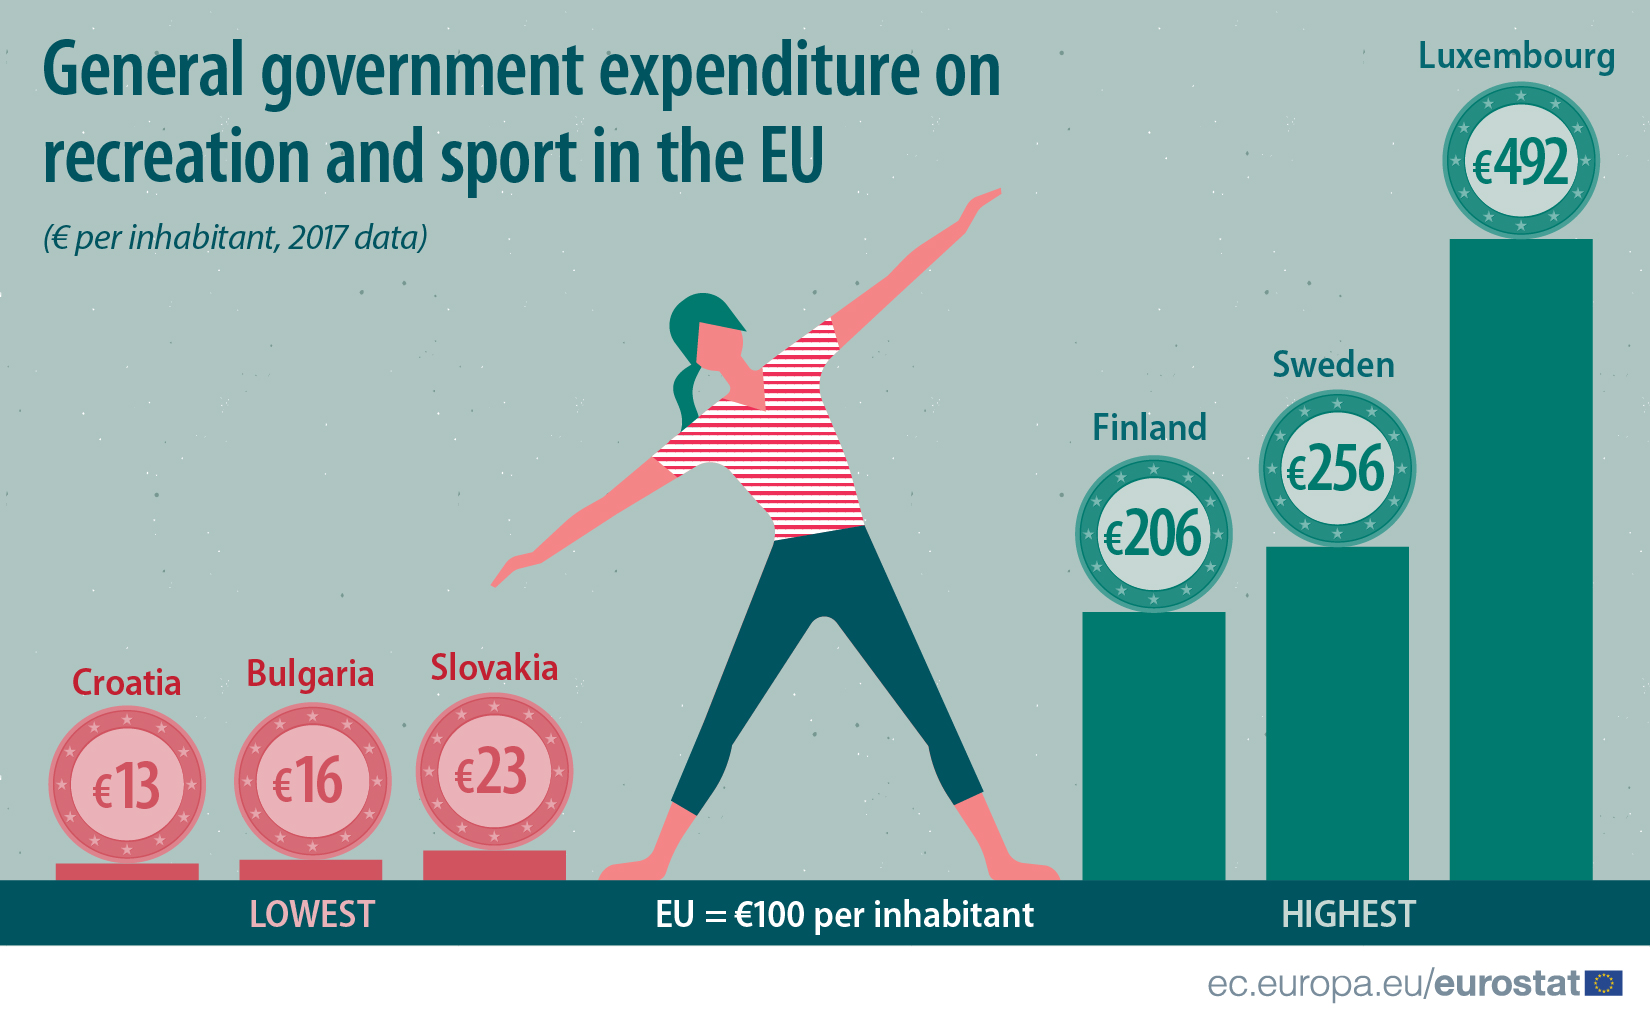 Government expenditure on recreation and sport in 2017